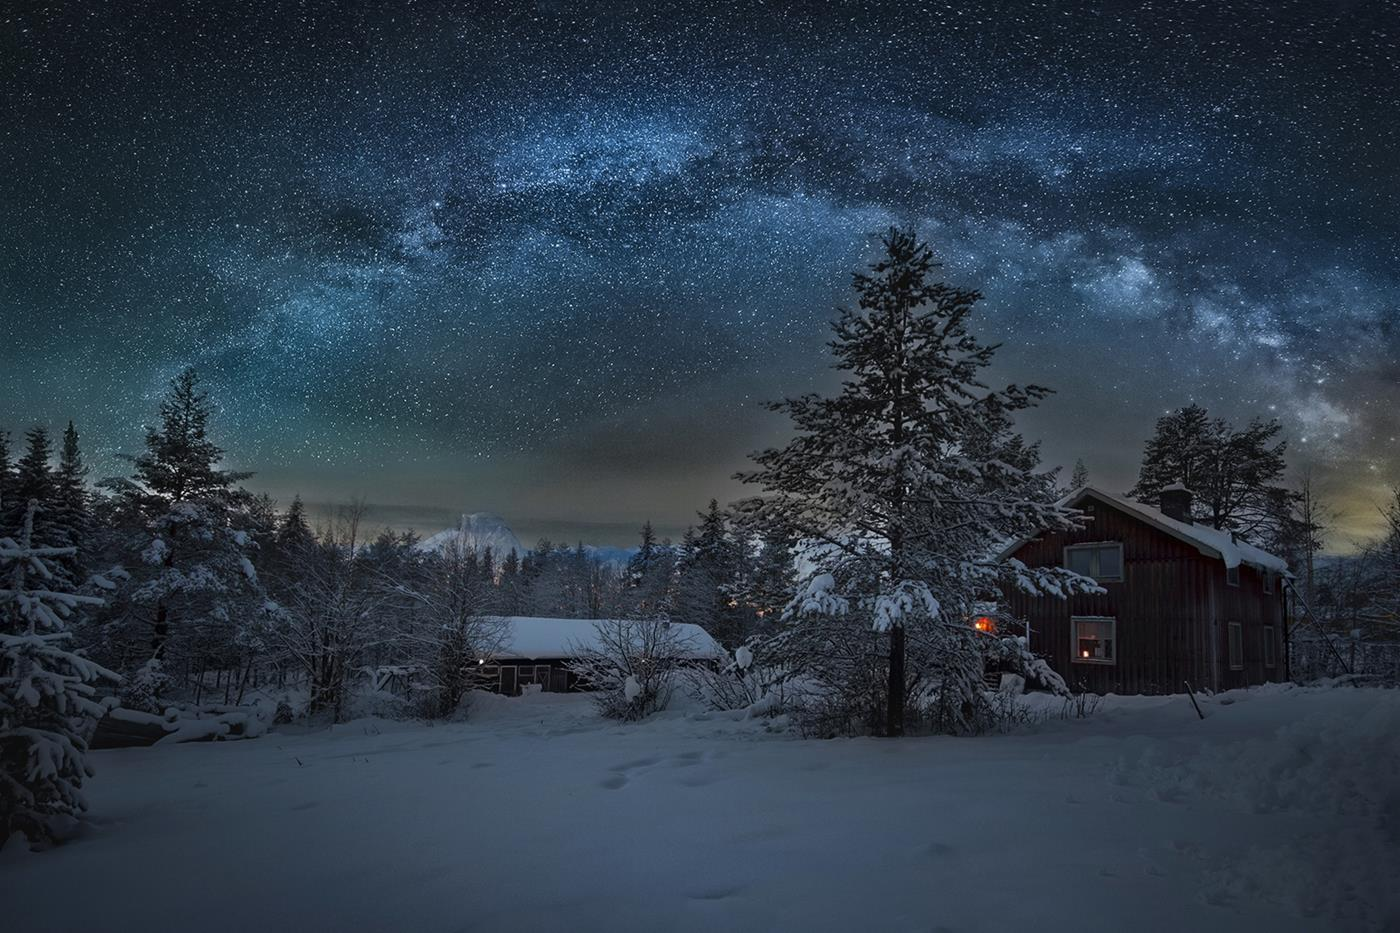 an old mans winter night Get an answer for 'how can i develop a detailed analysis of the poem an old man's winter night by robert frosti wonder what the deep meaning of it is or what interpretations we can have of it.